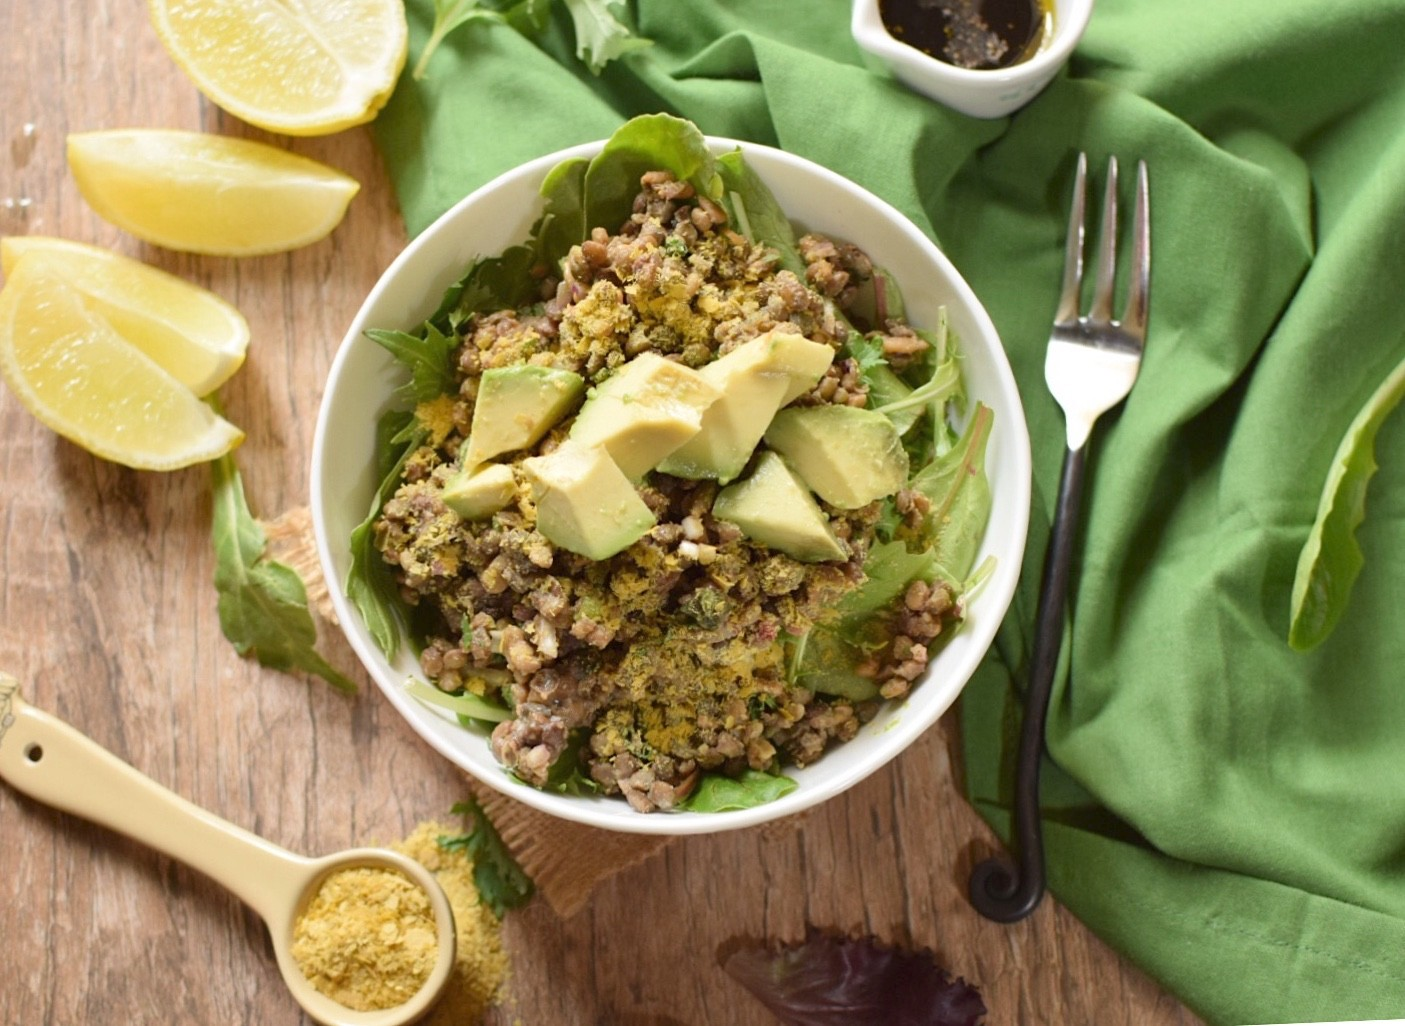 Healthy, Vegan Lentil Salad